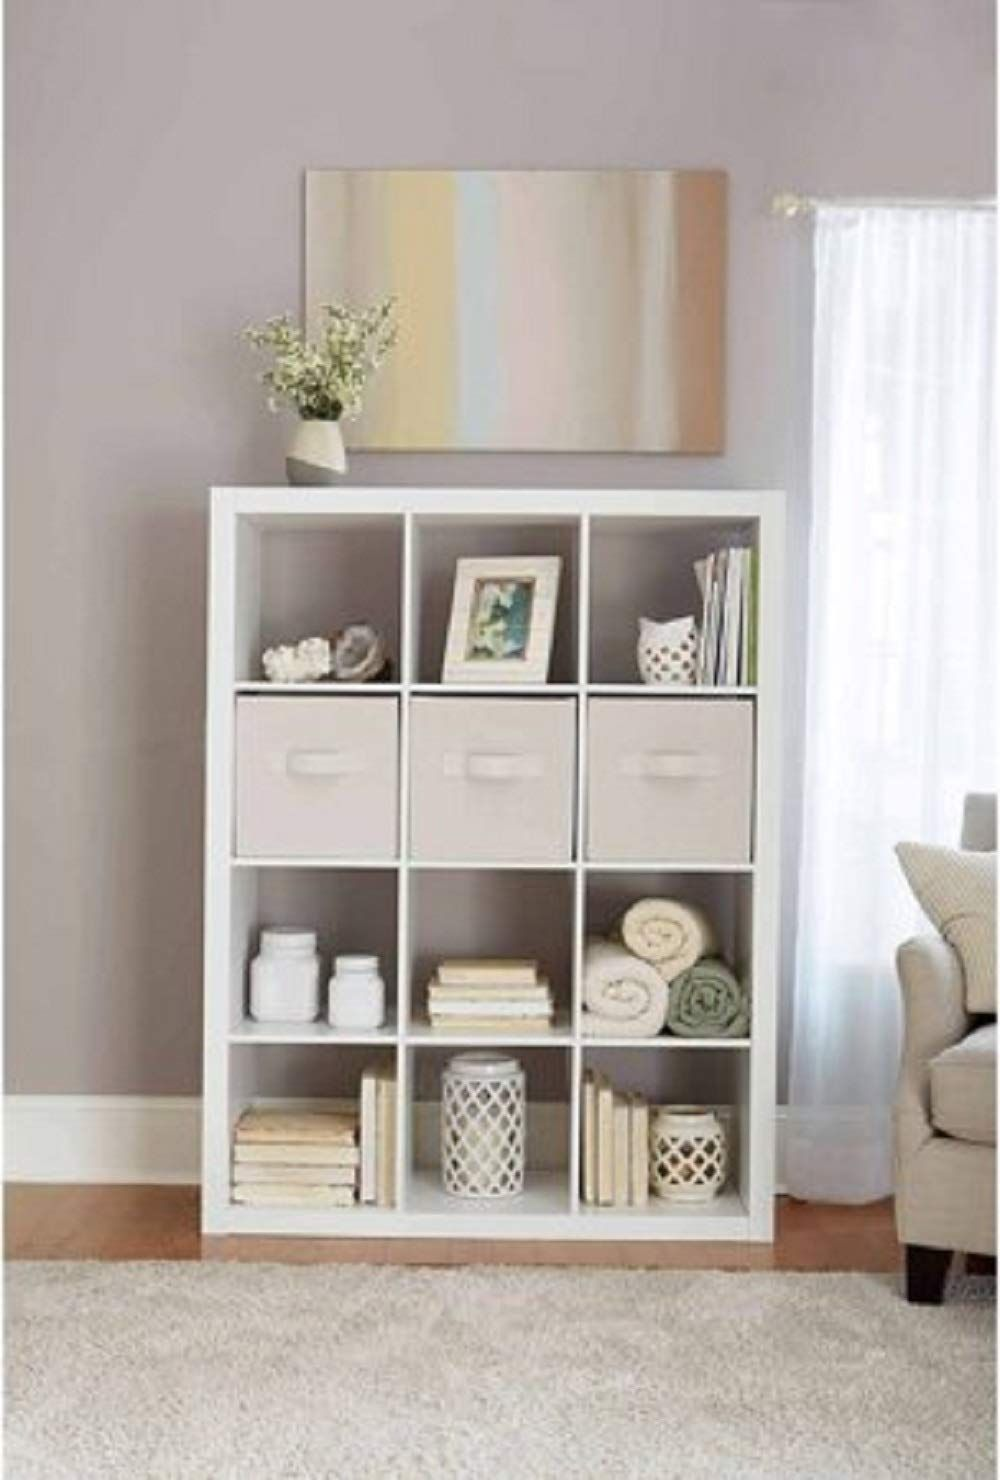 39a4c767fa06626e76f594bd5679f0cd - Better Homes And Gardens 12 Cube Organizer Weathered